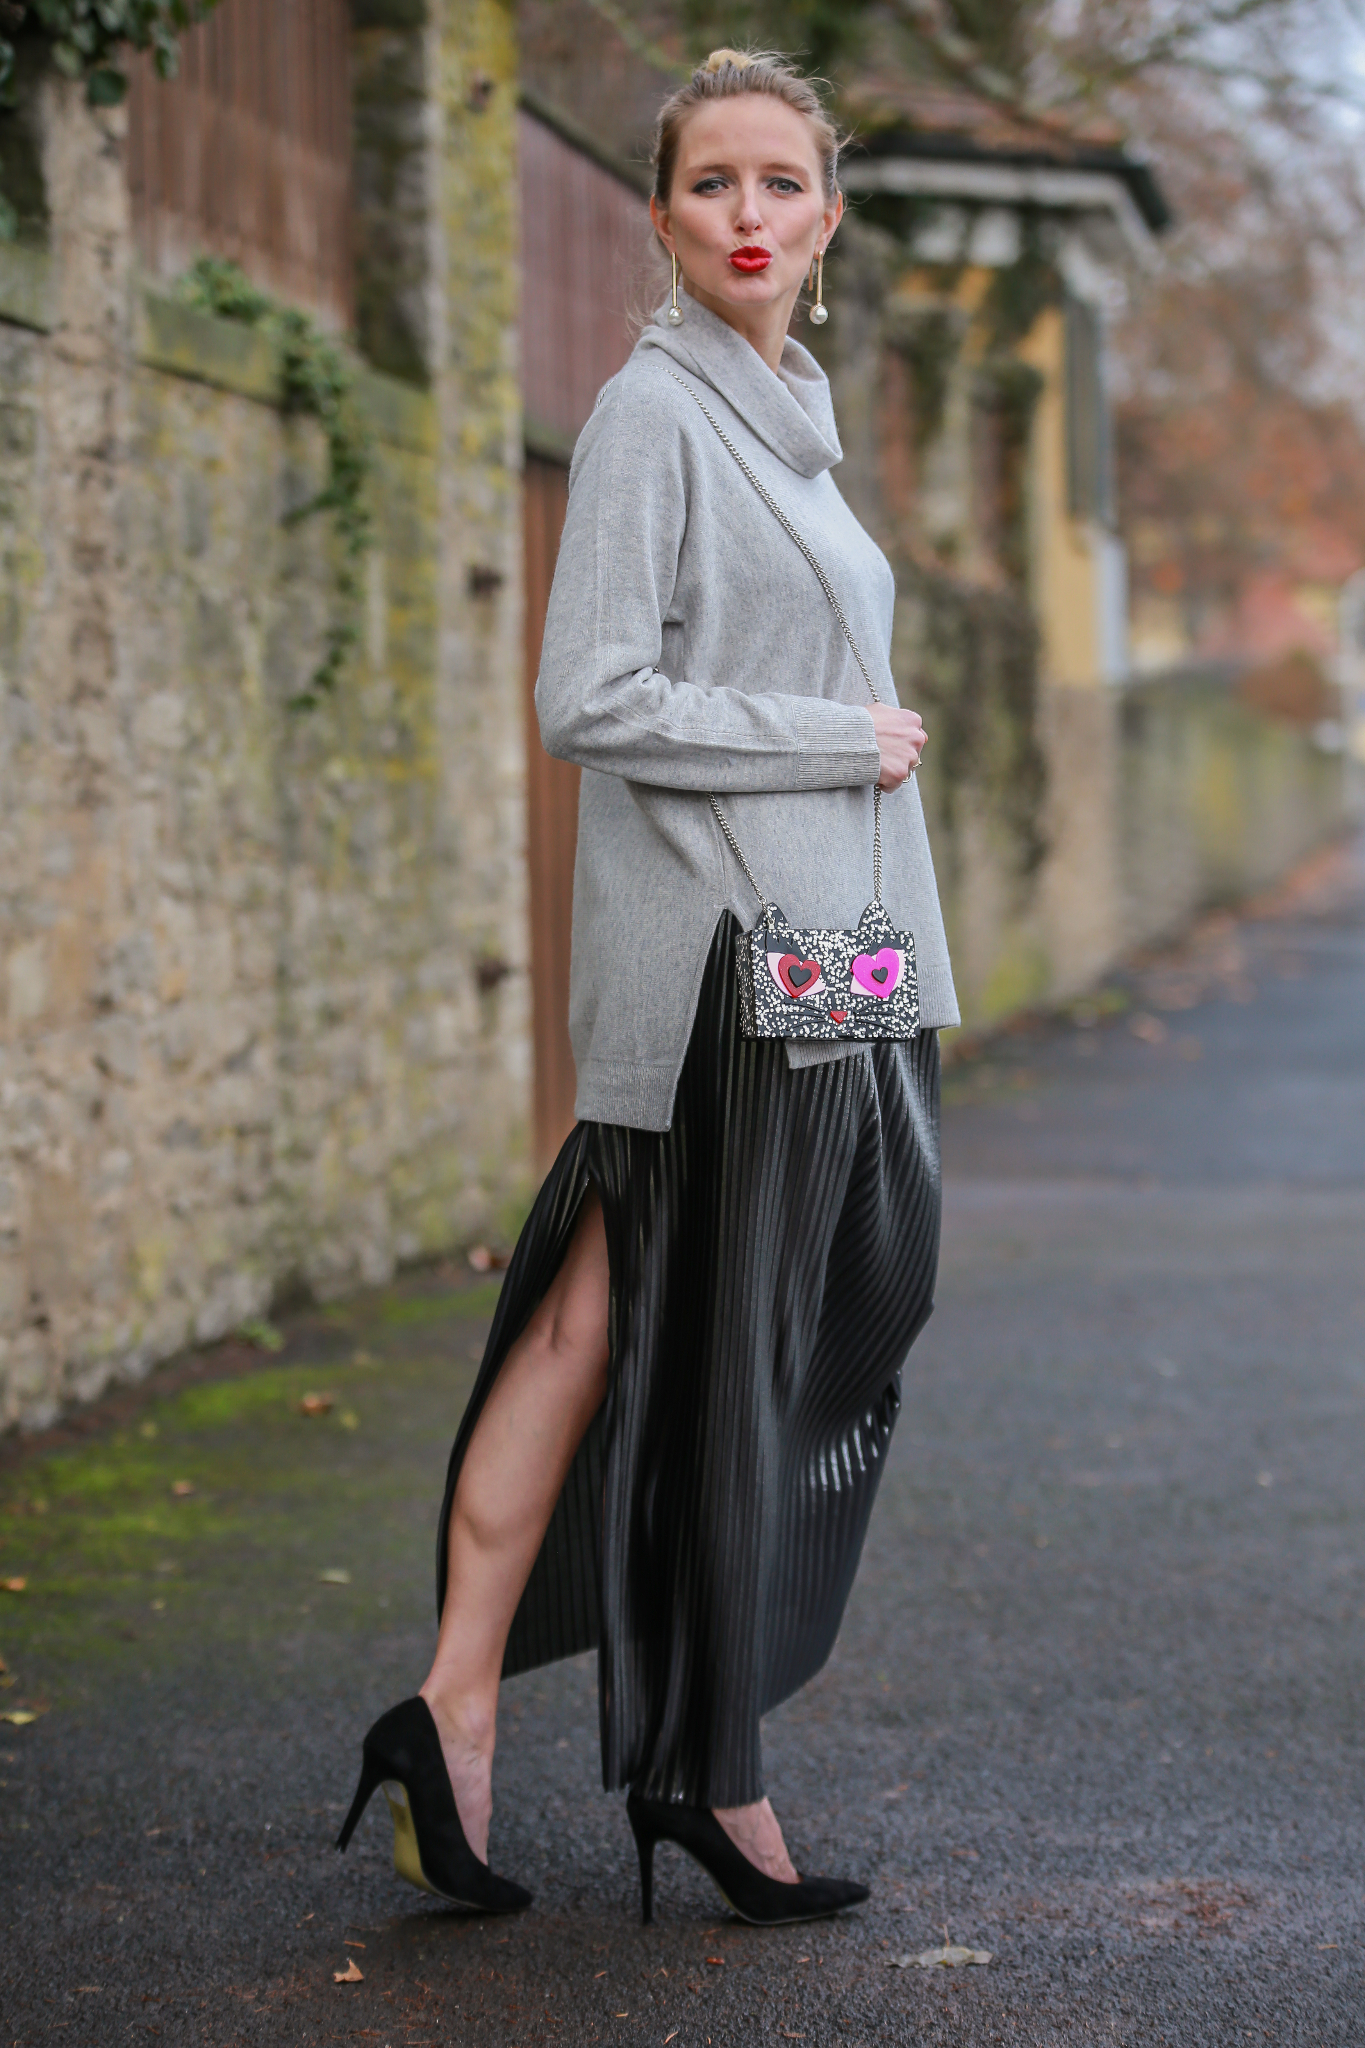 Fashion_Outfit_All_that_glitter-7